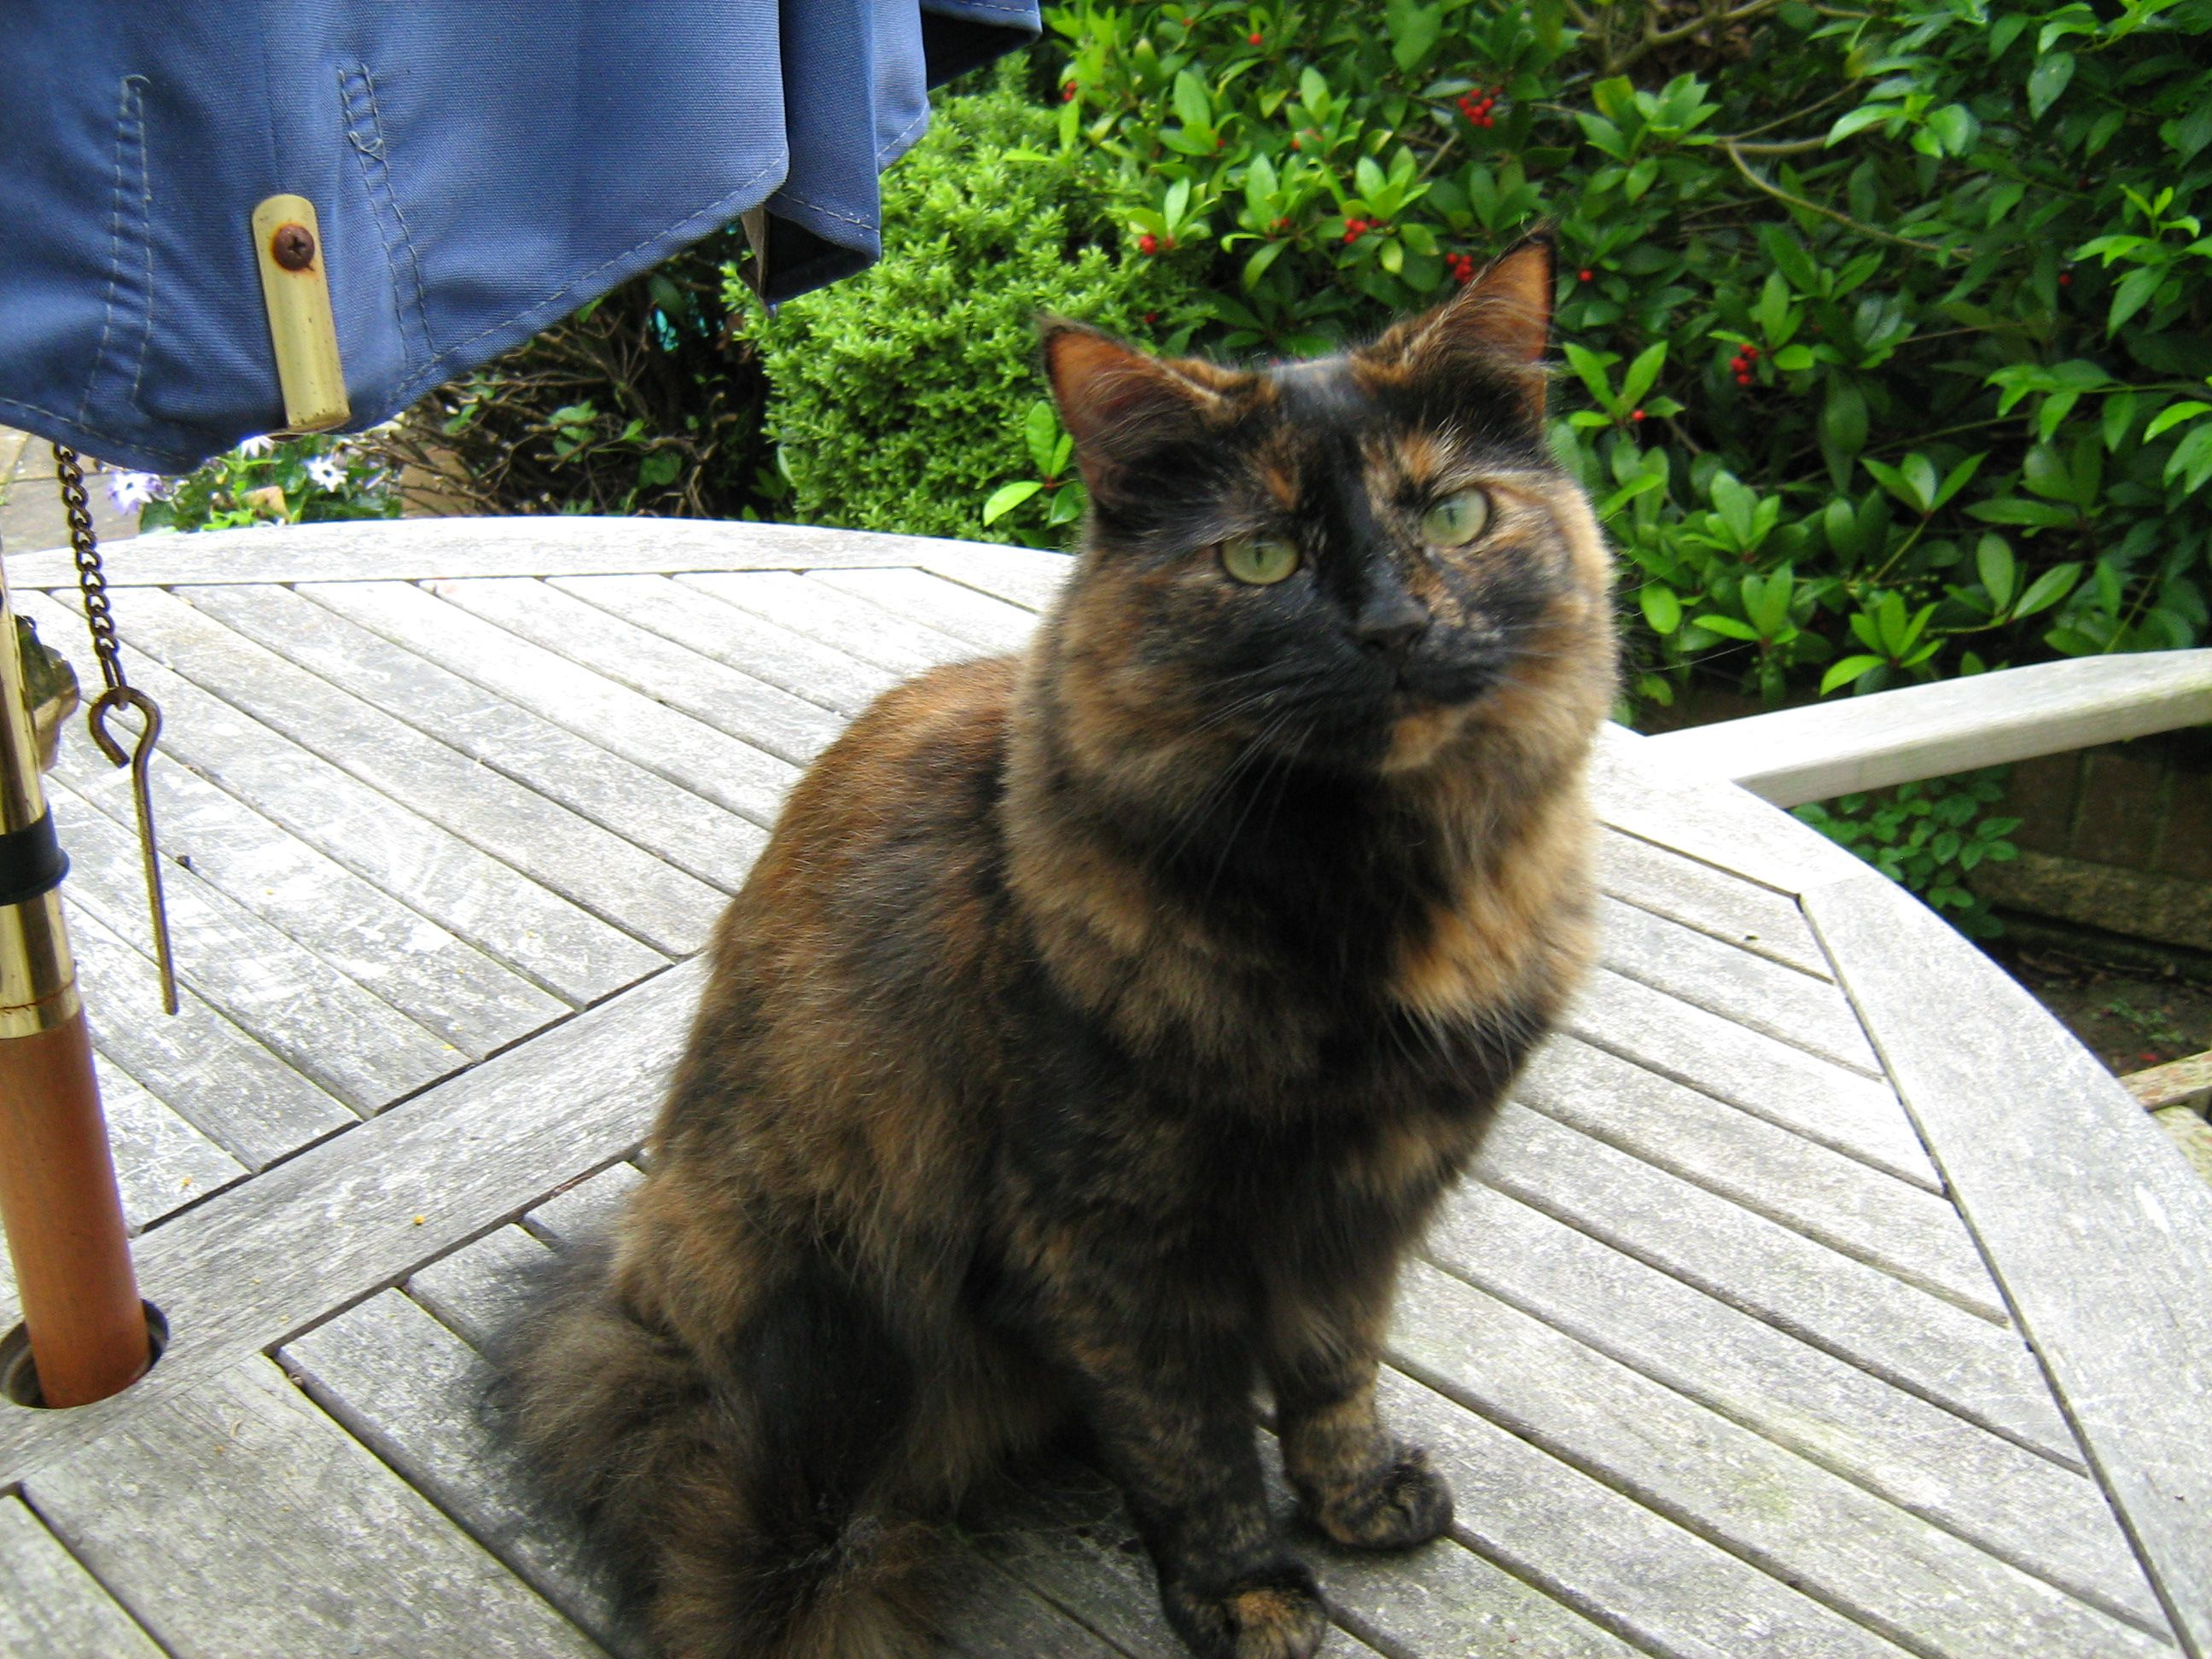 And Here S Girly Who Is Also Sadly No Longer With Us She Wasn T Much Into Beads Unless There Was A Mouse Attached To The Cats Jewelry Making Supplies Beads